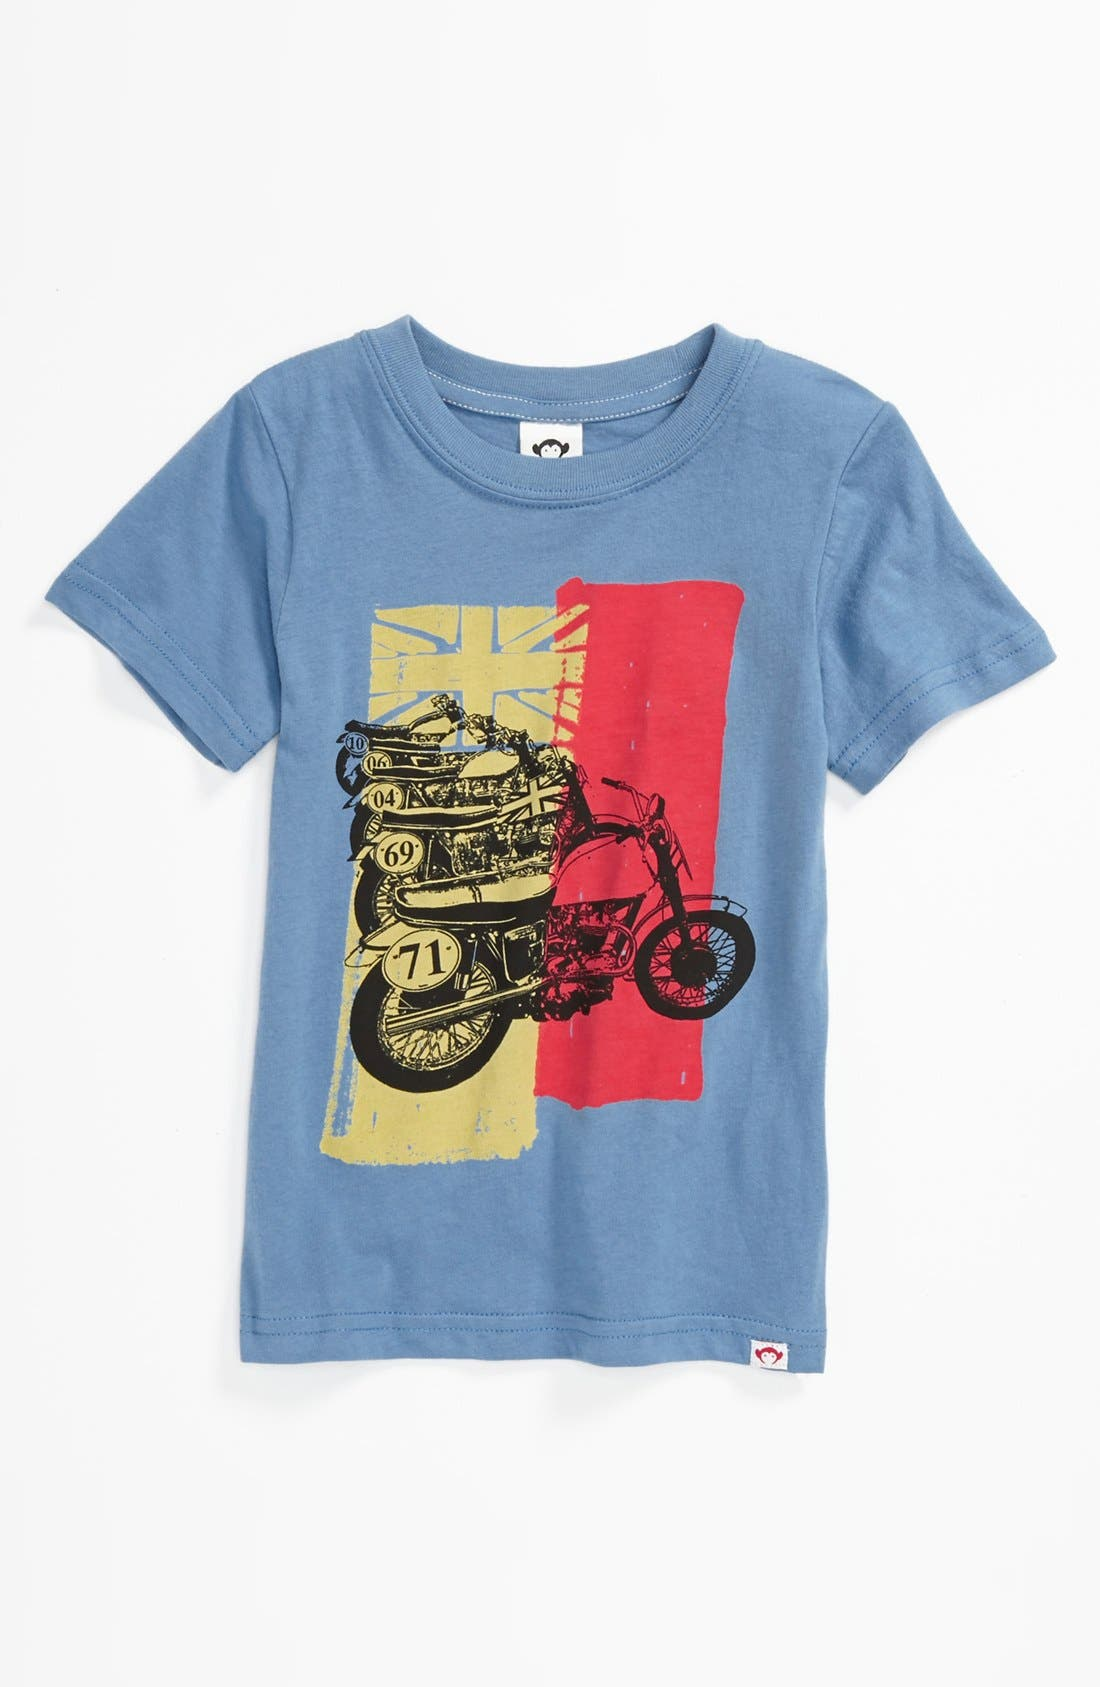 Main Image - Appaman 'Bikes' T-Shirt (Toddler)